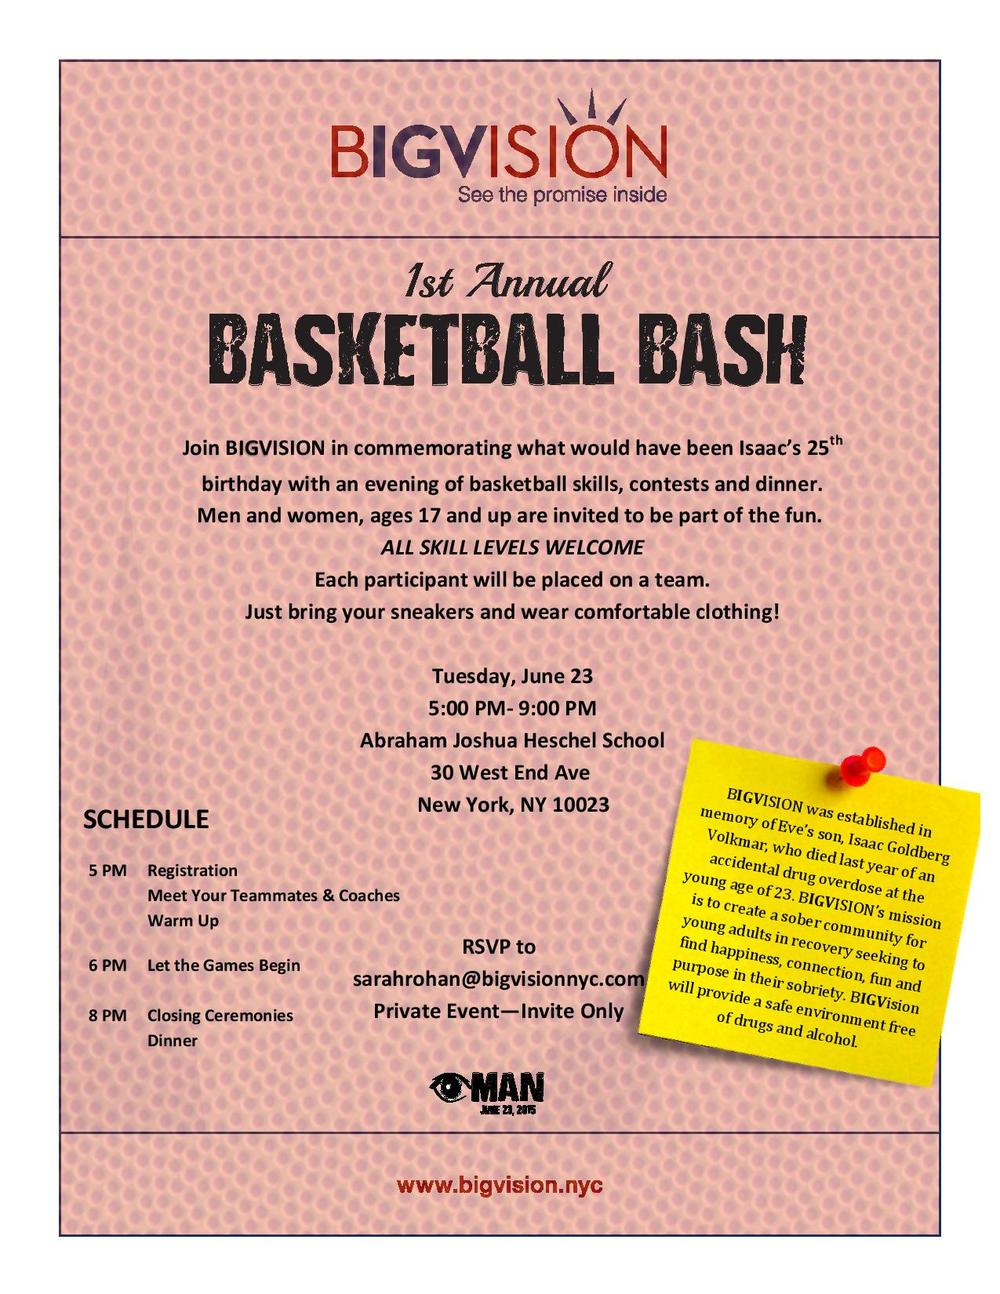 June 23 Basketball Bash Flyer.jpg